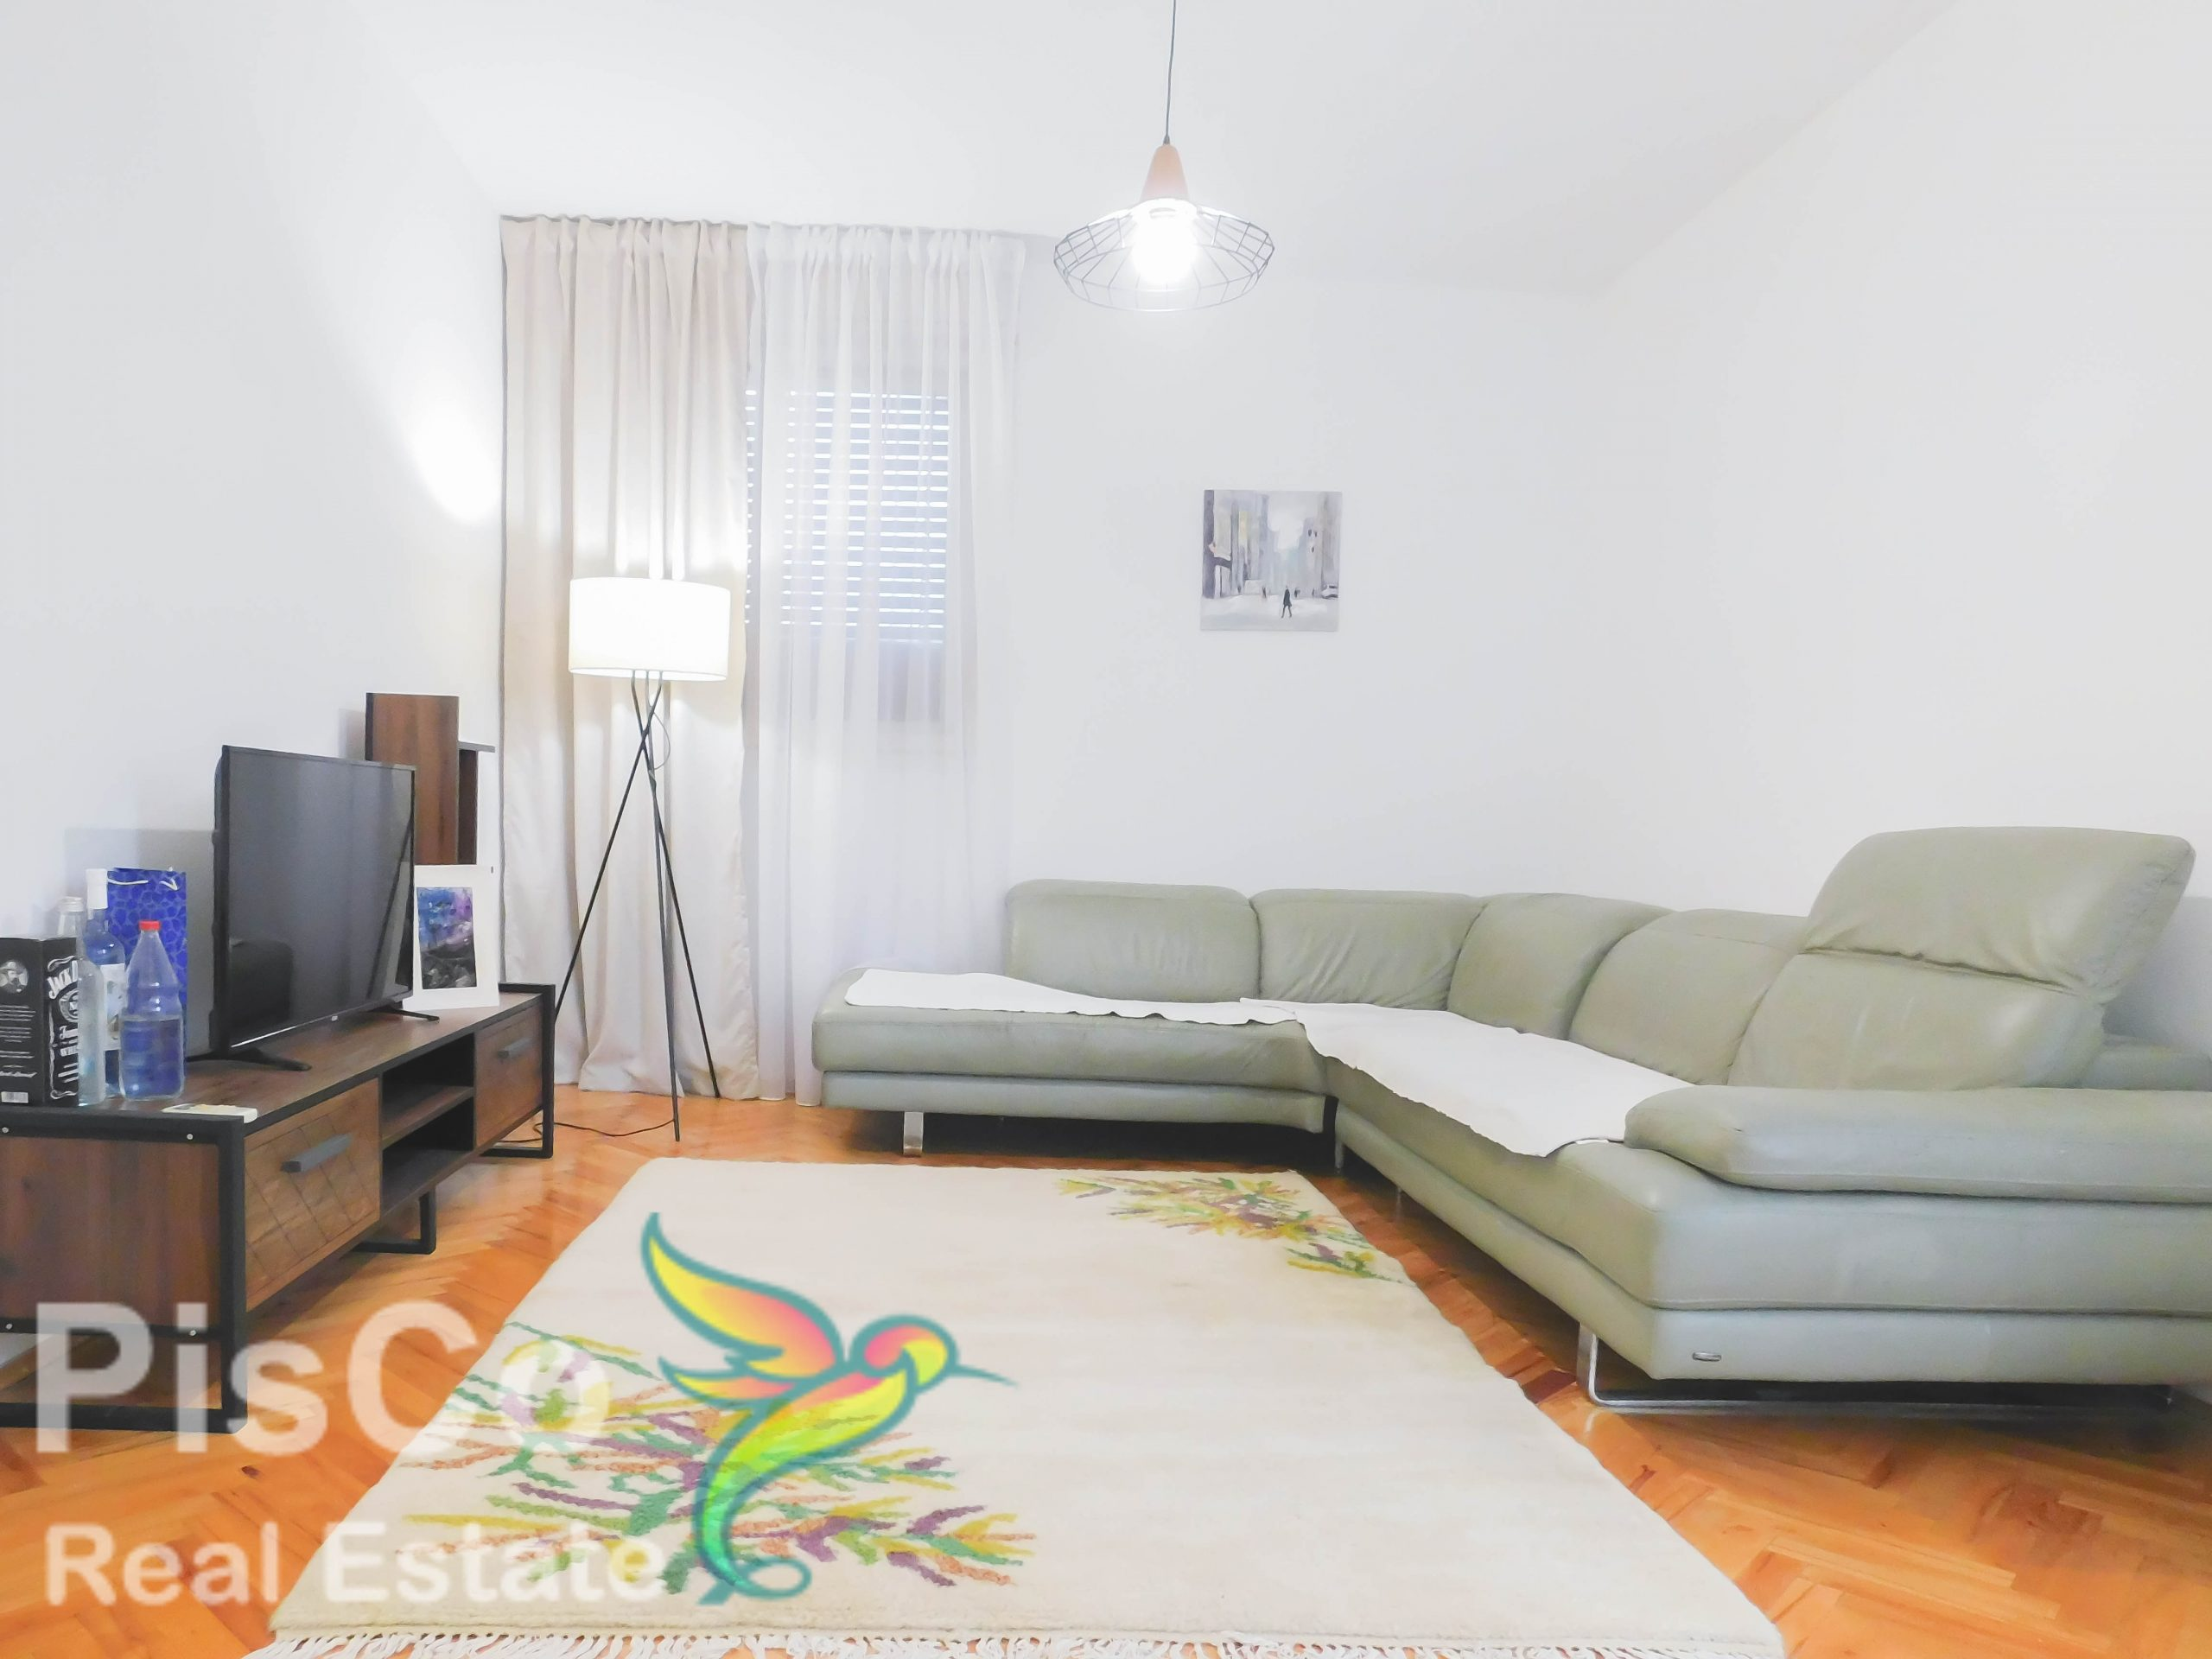 A two-bedroom apartment is rented at 5:00 | podgorica